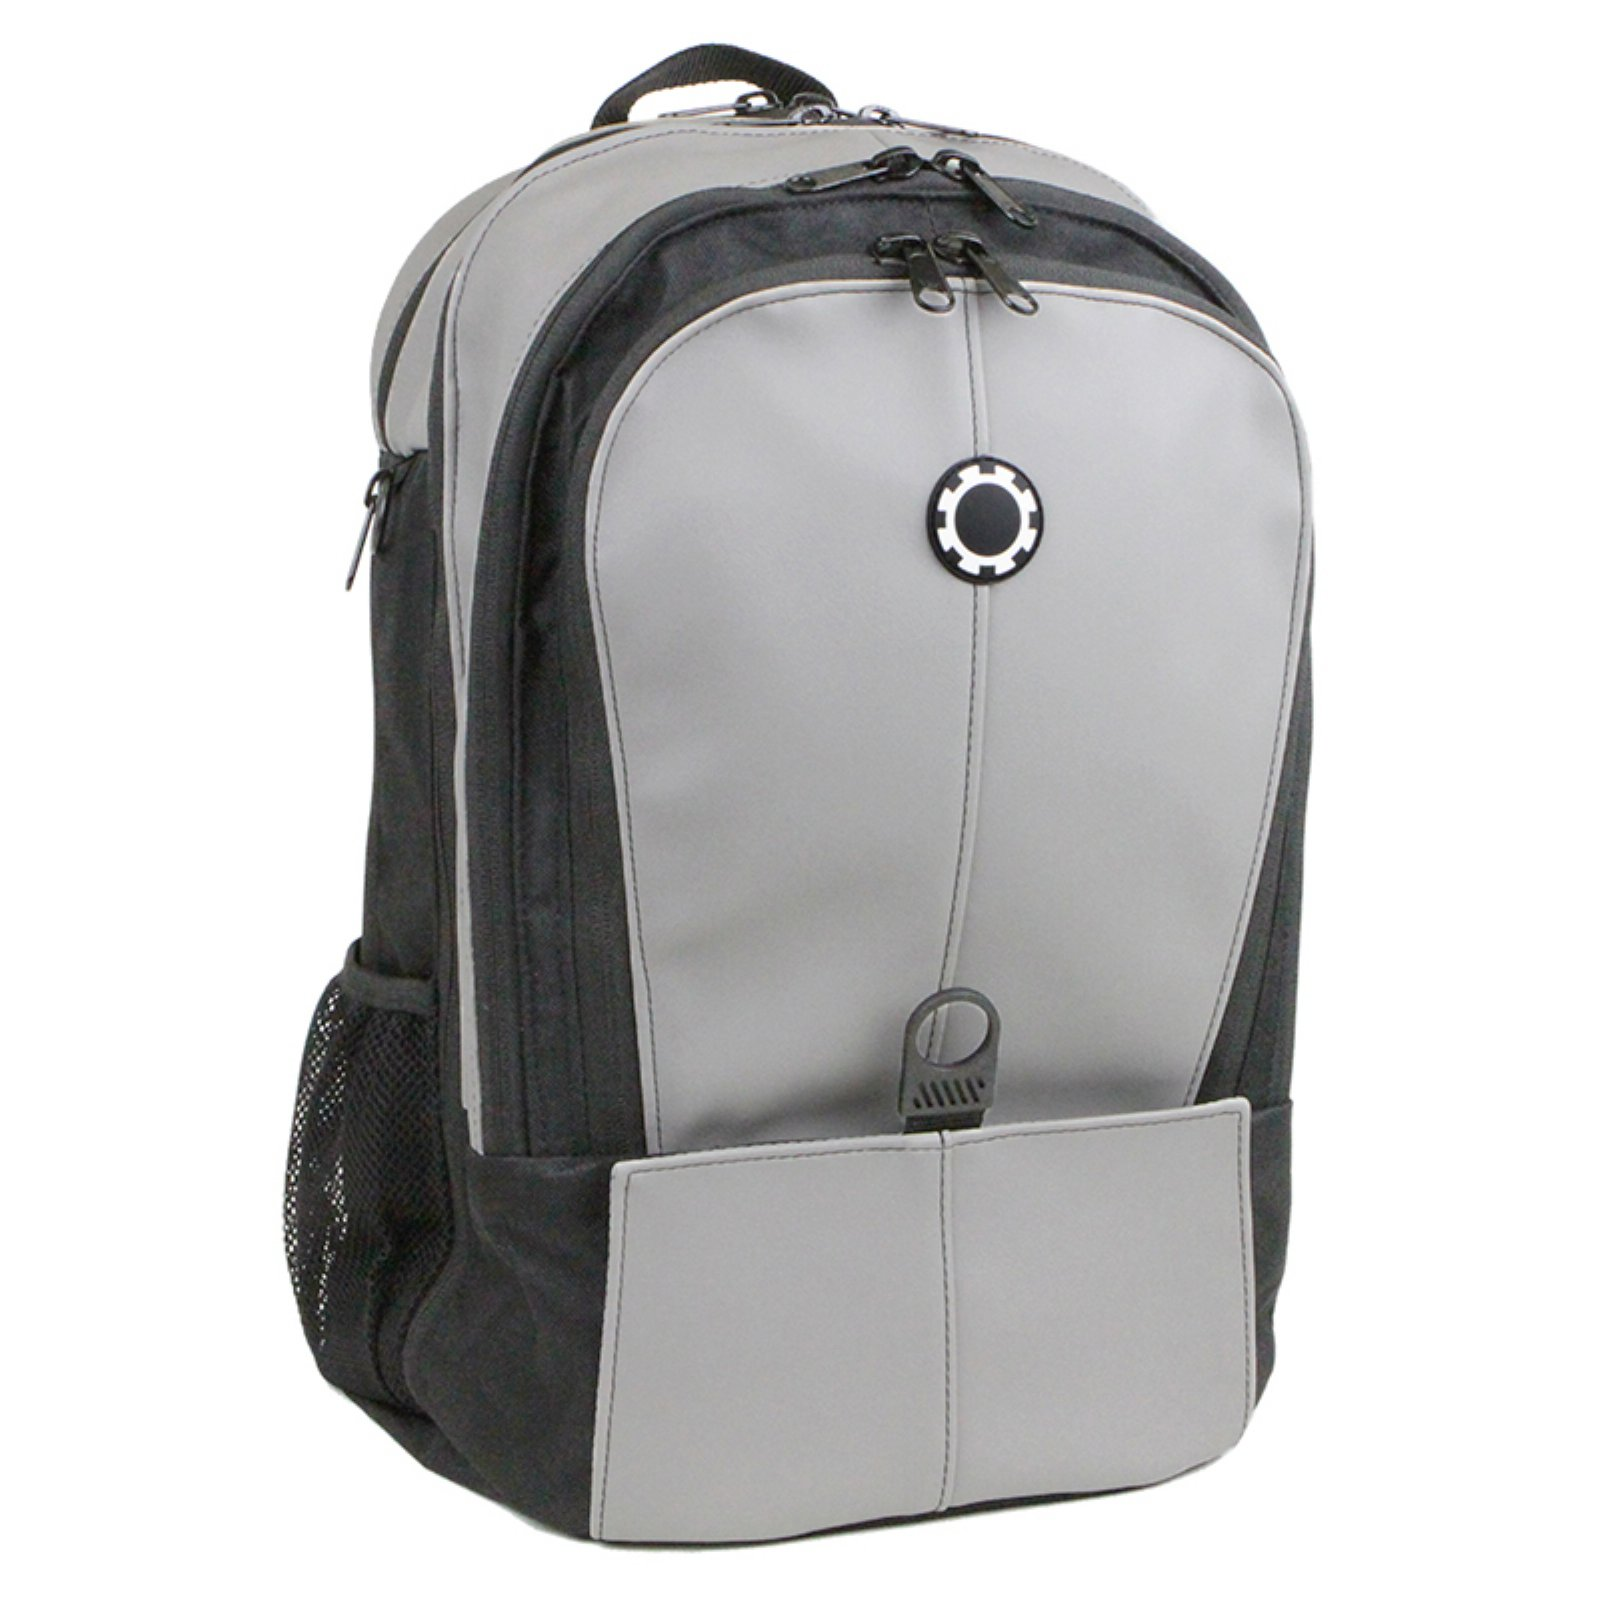 DadGear Backpack Diaper Bag - Professional Grey